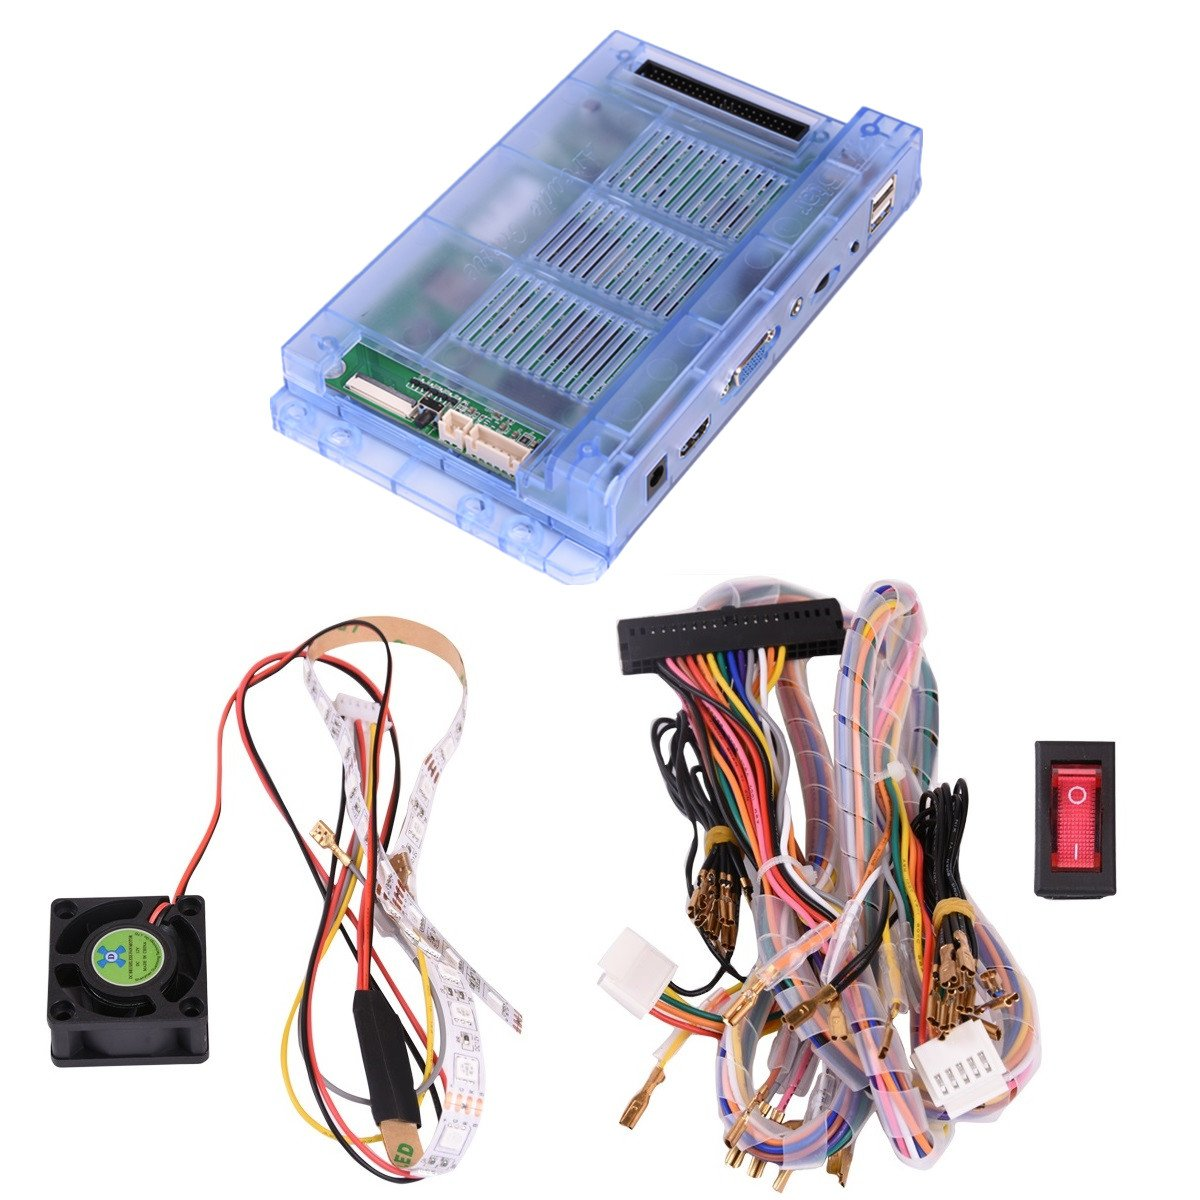 Pandoras Box 5s Home Arcade Console Machine999 Games All In Please Could You Help With Wiring New Light To Older Cables Diynot 1 Kit 2 Players Machineenglish Version Harness Fasten Wire Cable